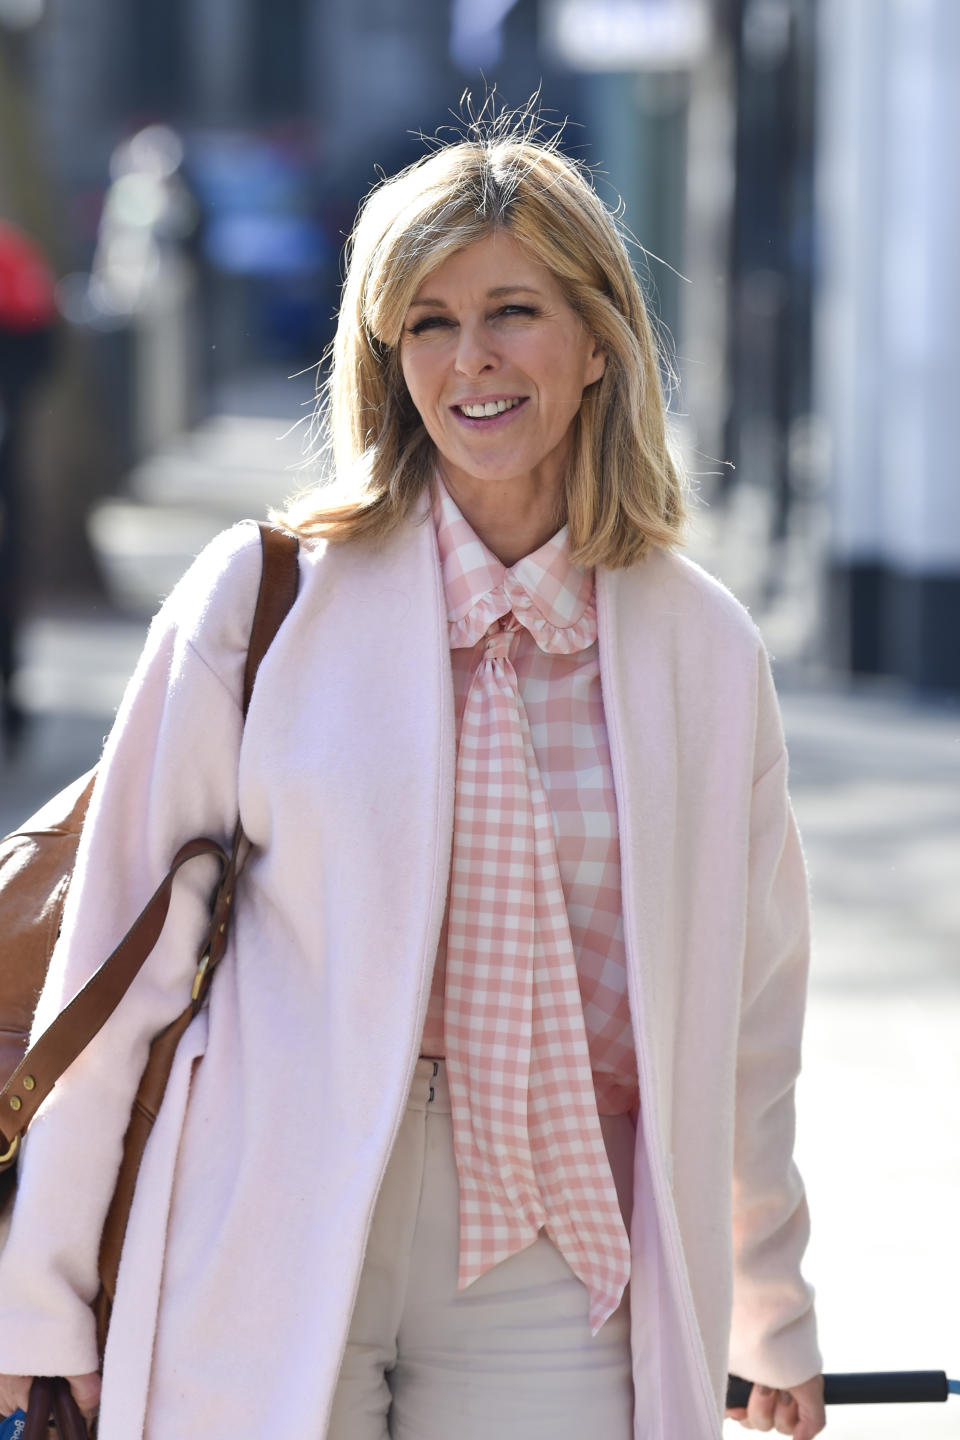 Kate Garraway seen arriving at the Global Radio studios in London. (Photo by Dave Rushen / SOPA Images/Sipa USA)